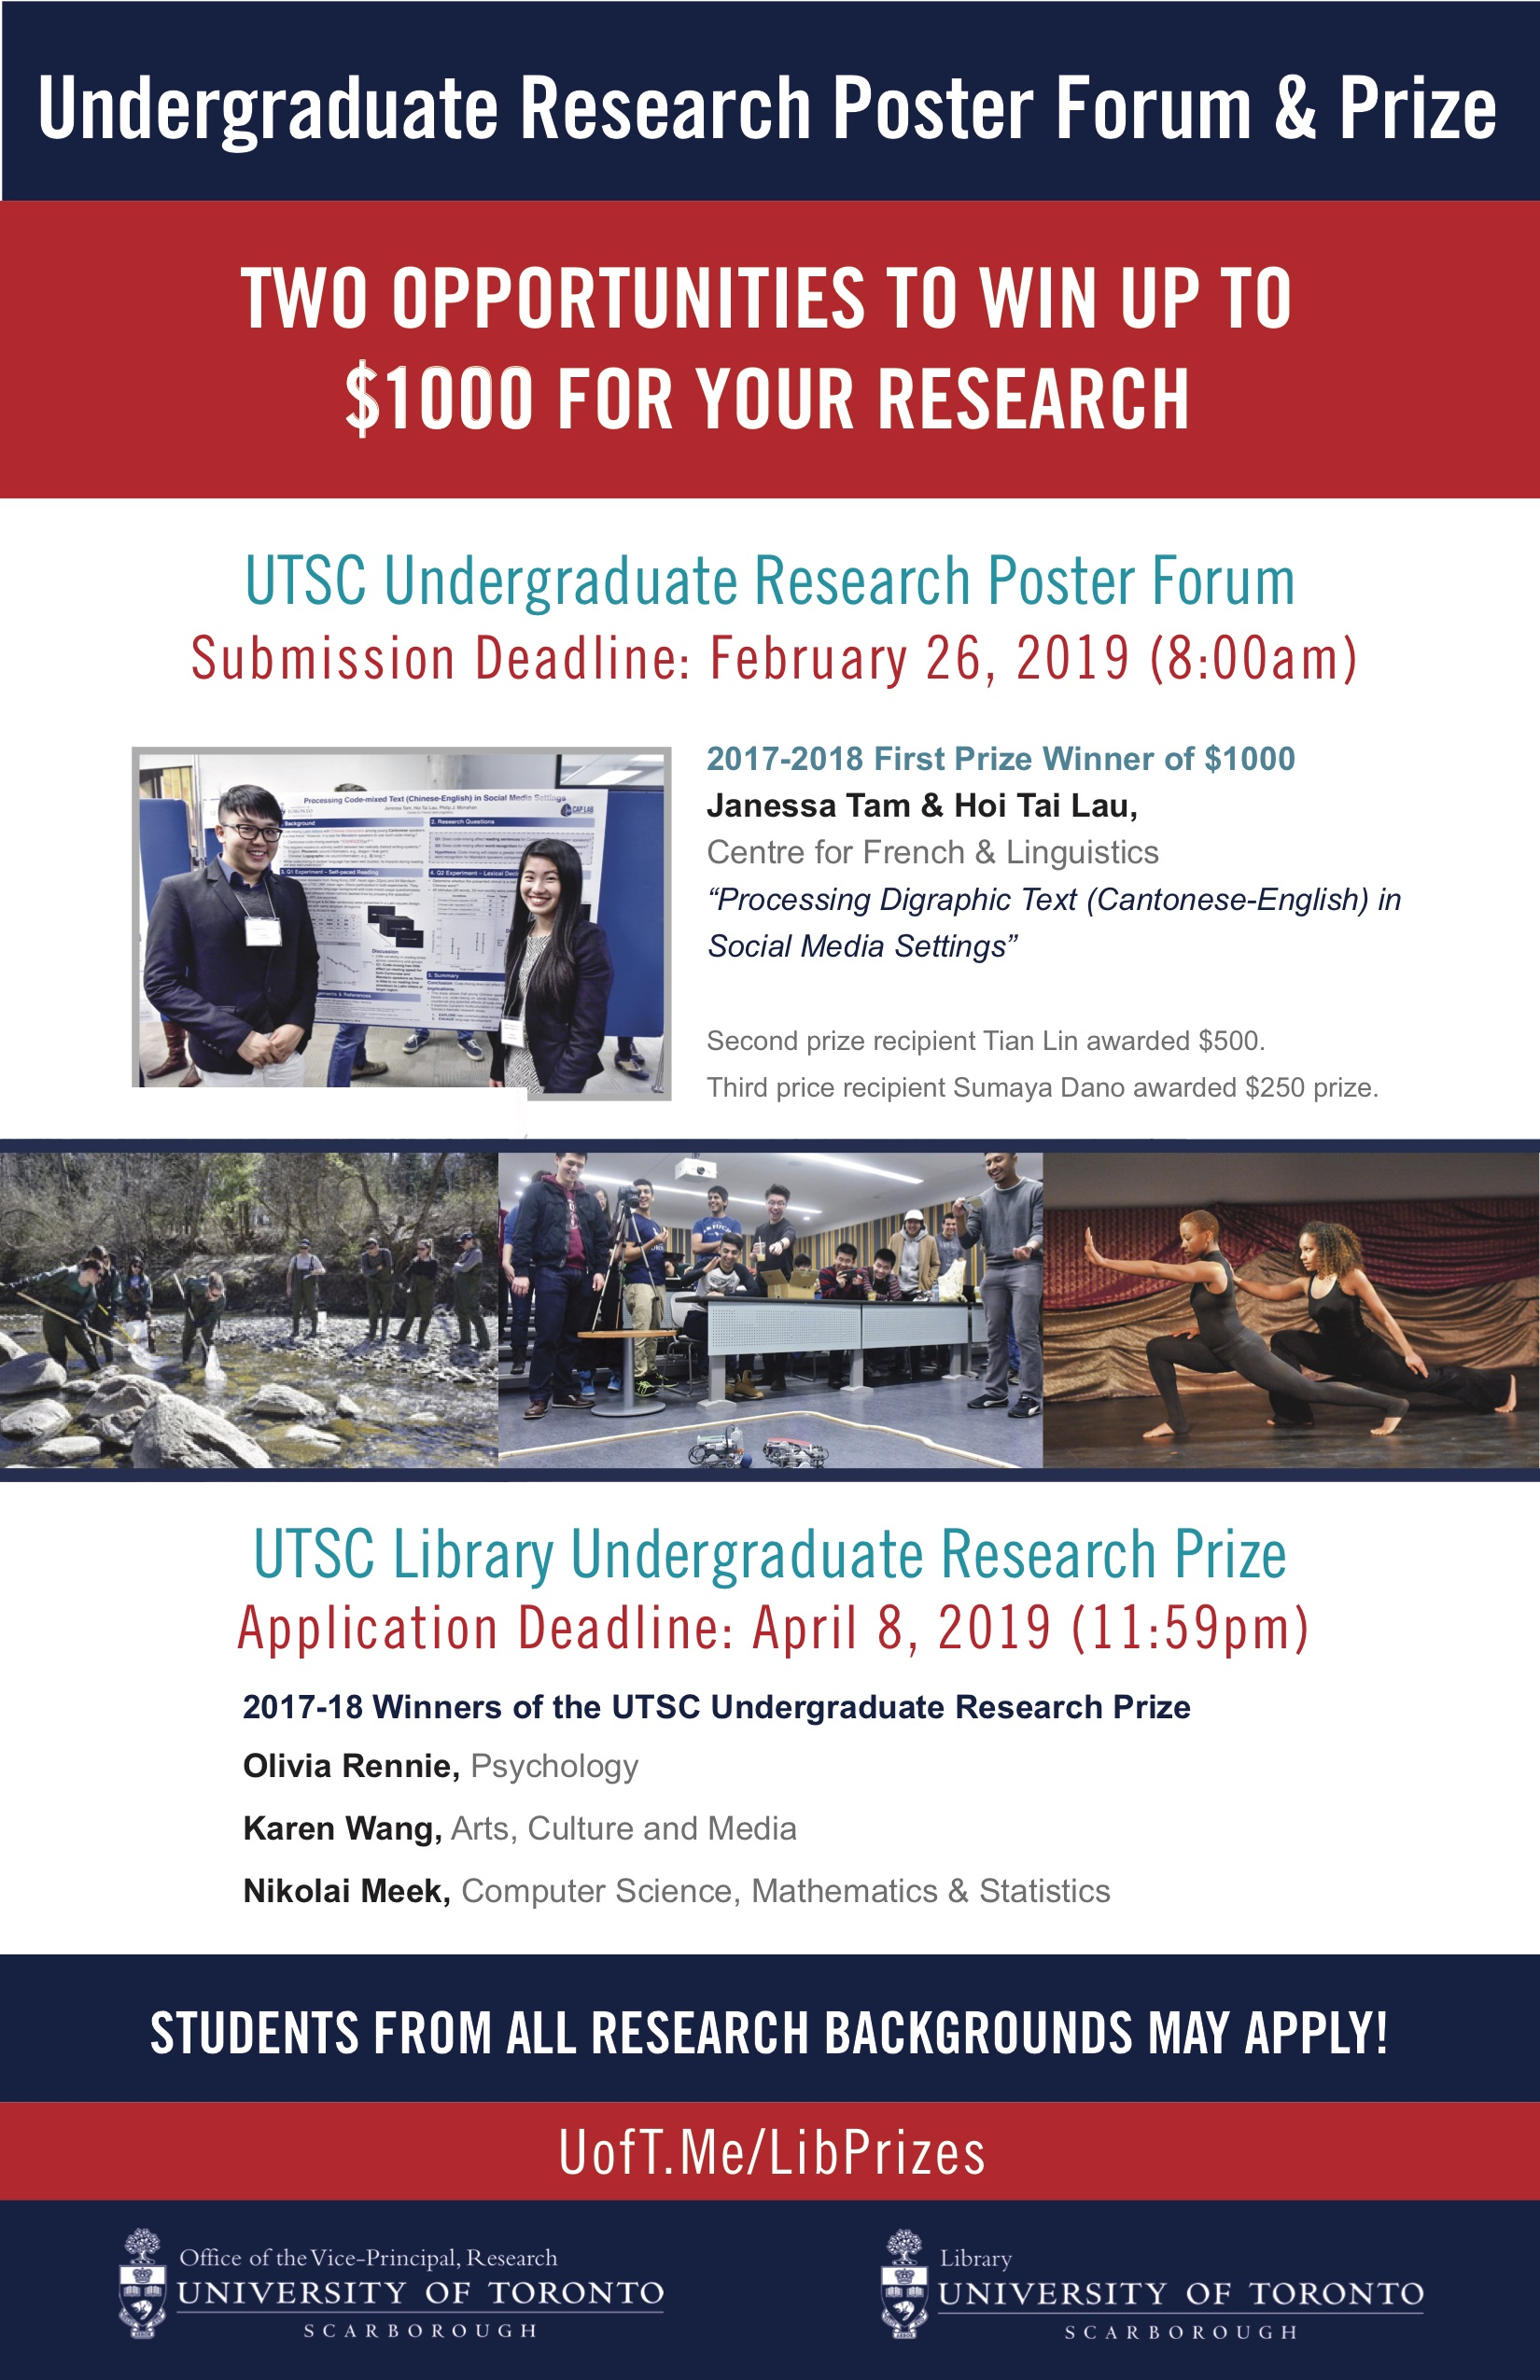 Undergraduate research poster forum and prize - announcement